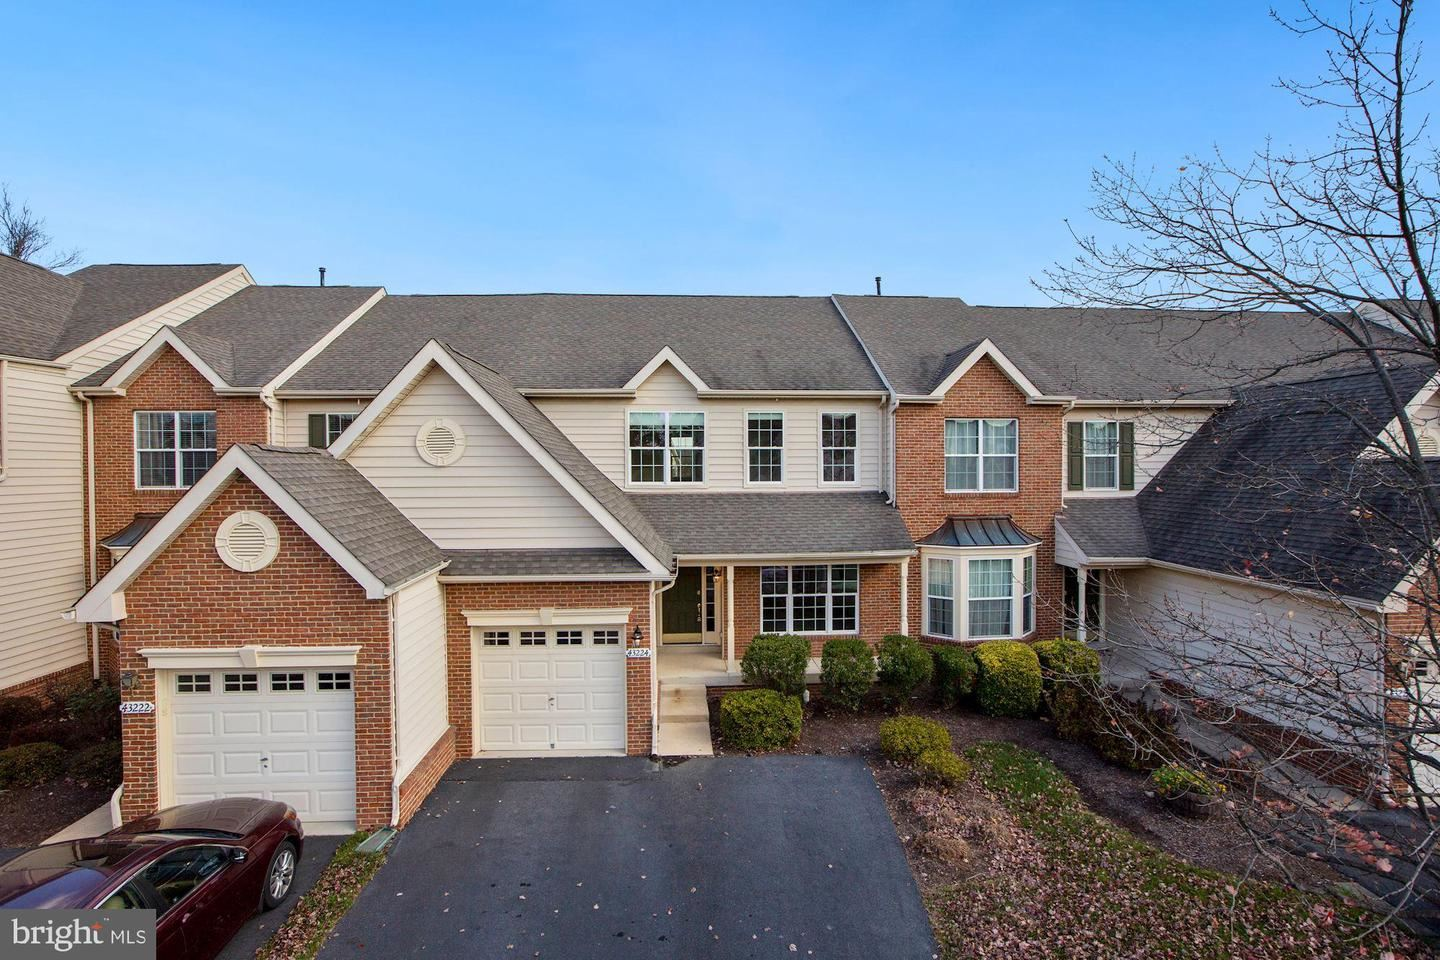 Photo of 43224 SOMERSET HILLS TER, ASHBURN, VA 20147 (MLS # VALO426392)